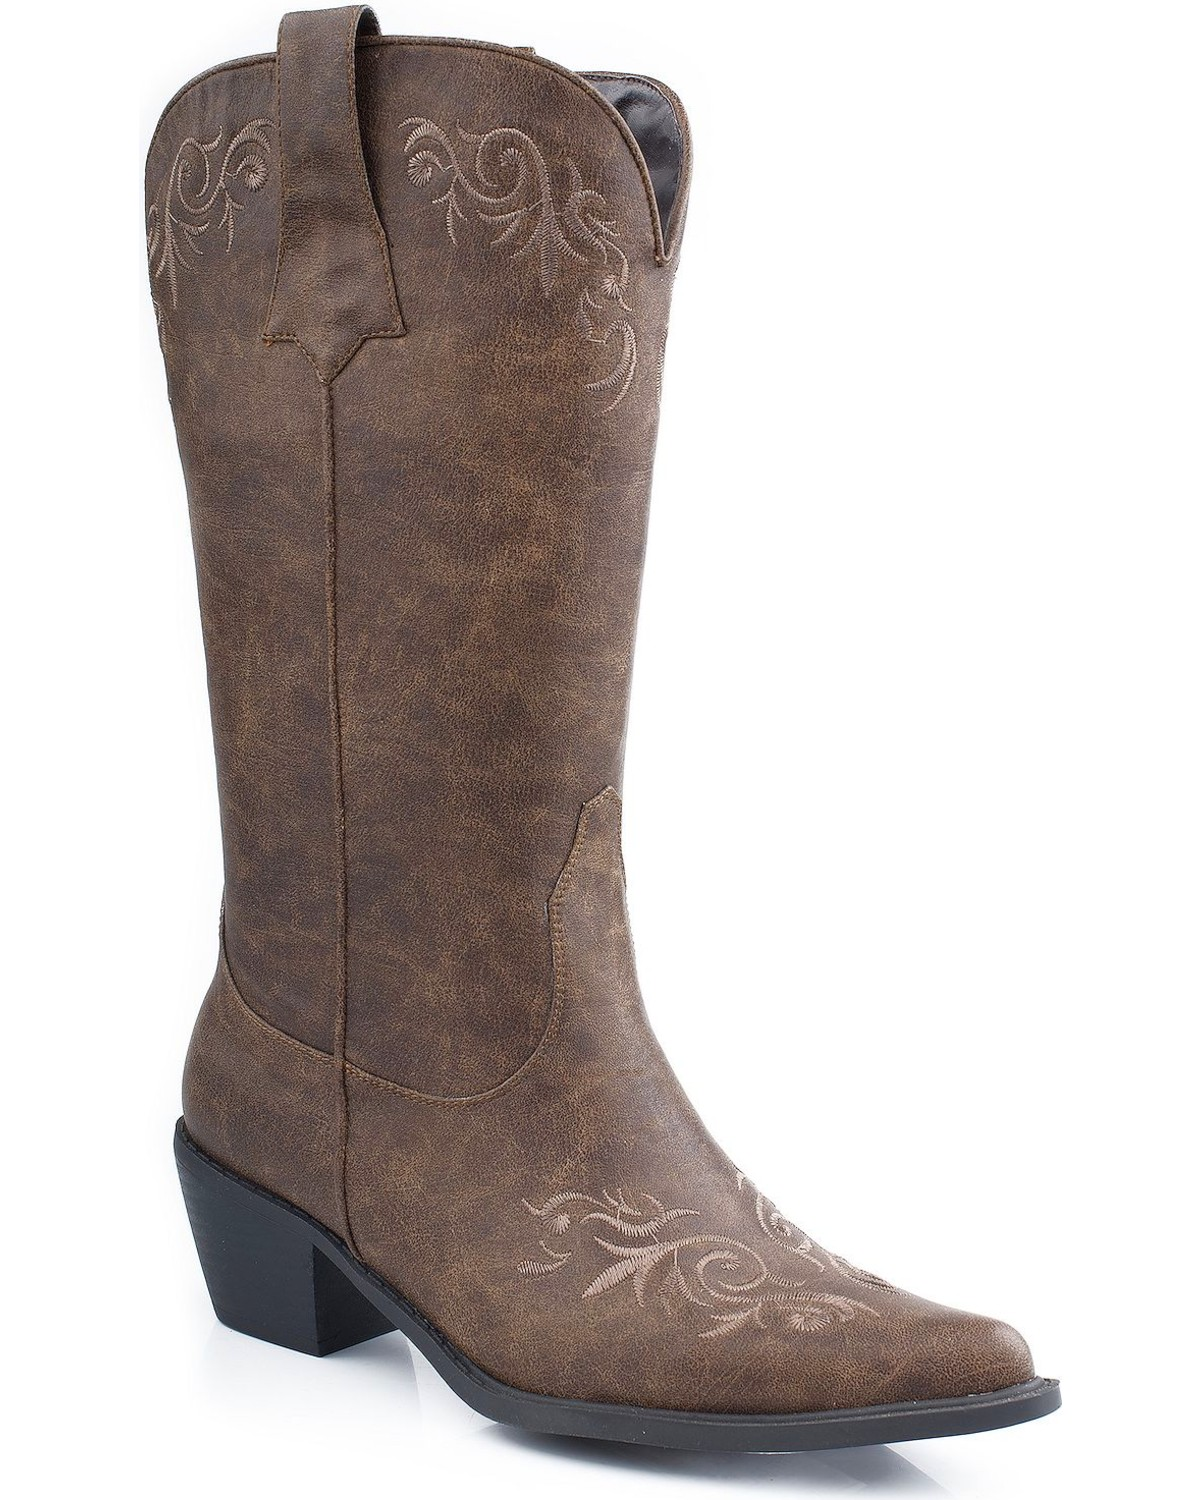 fcb5b144838 Roper Embroidered Faux Leather Cowgirl Boots - Pointed Toe